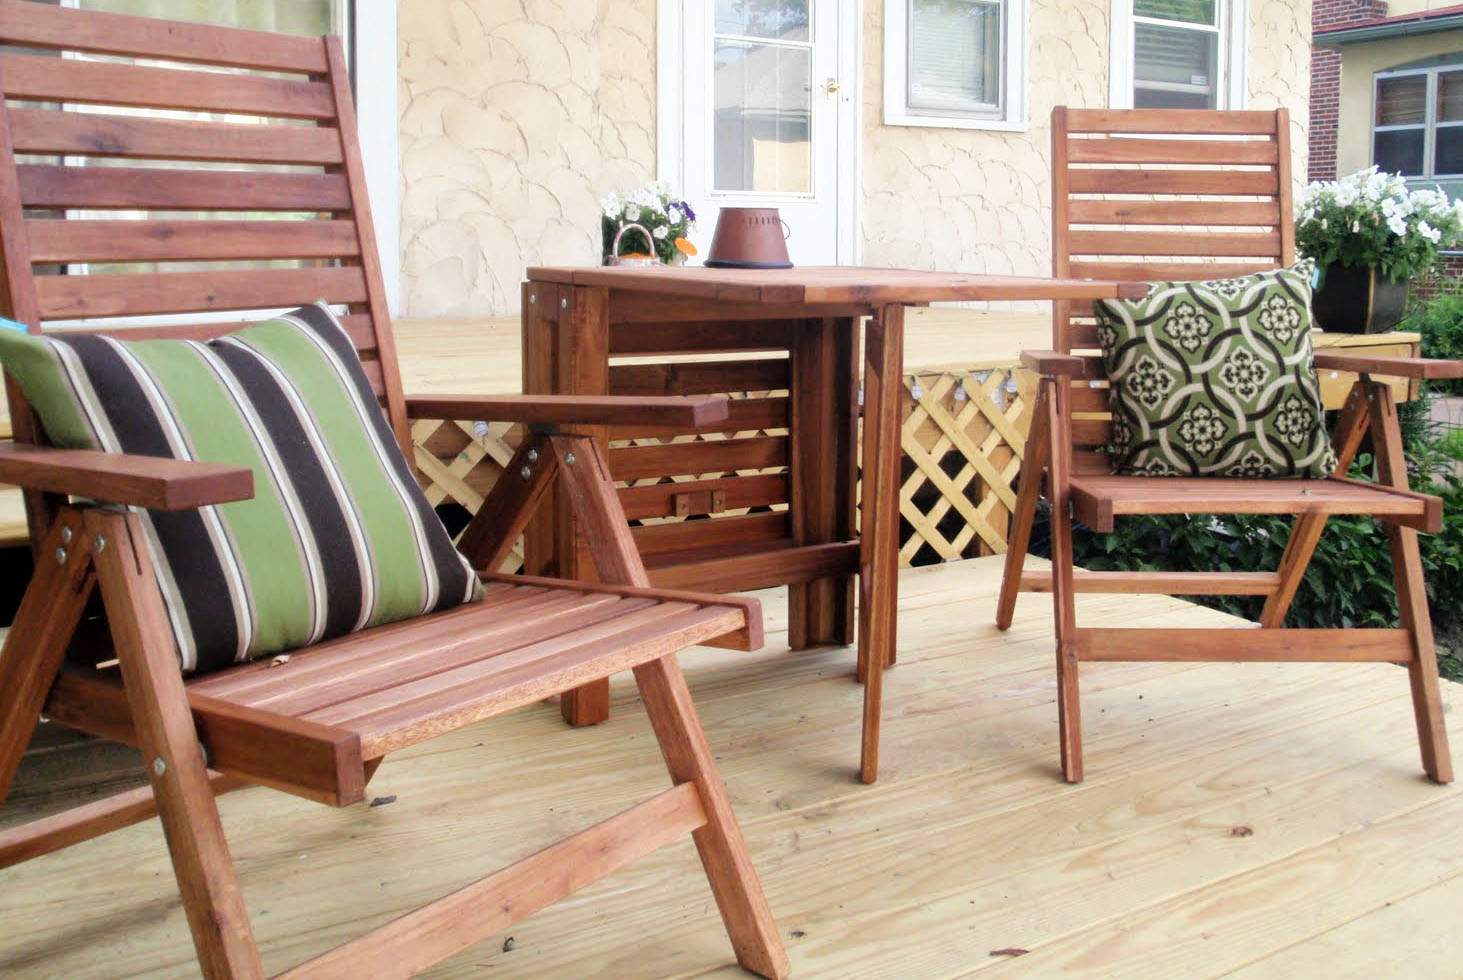 Hammers And High Heels: Patio Furniture Refresh & Outdoor